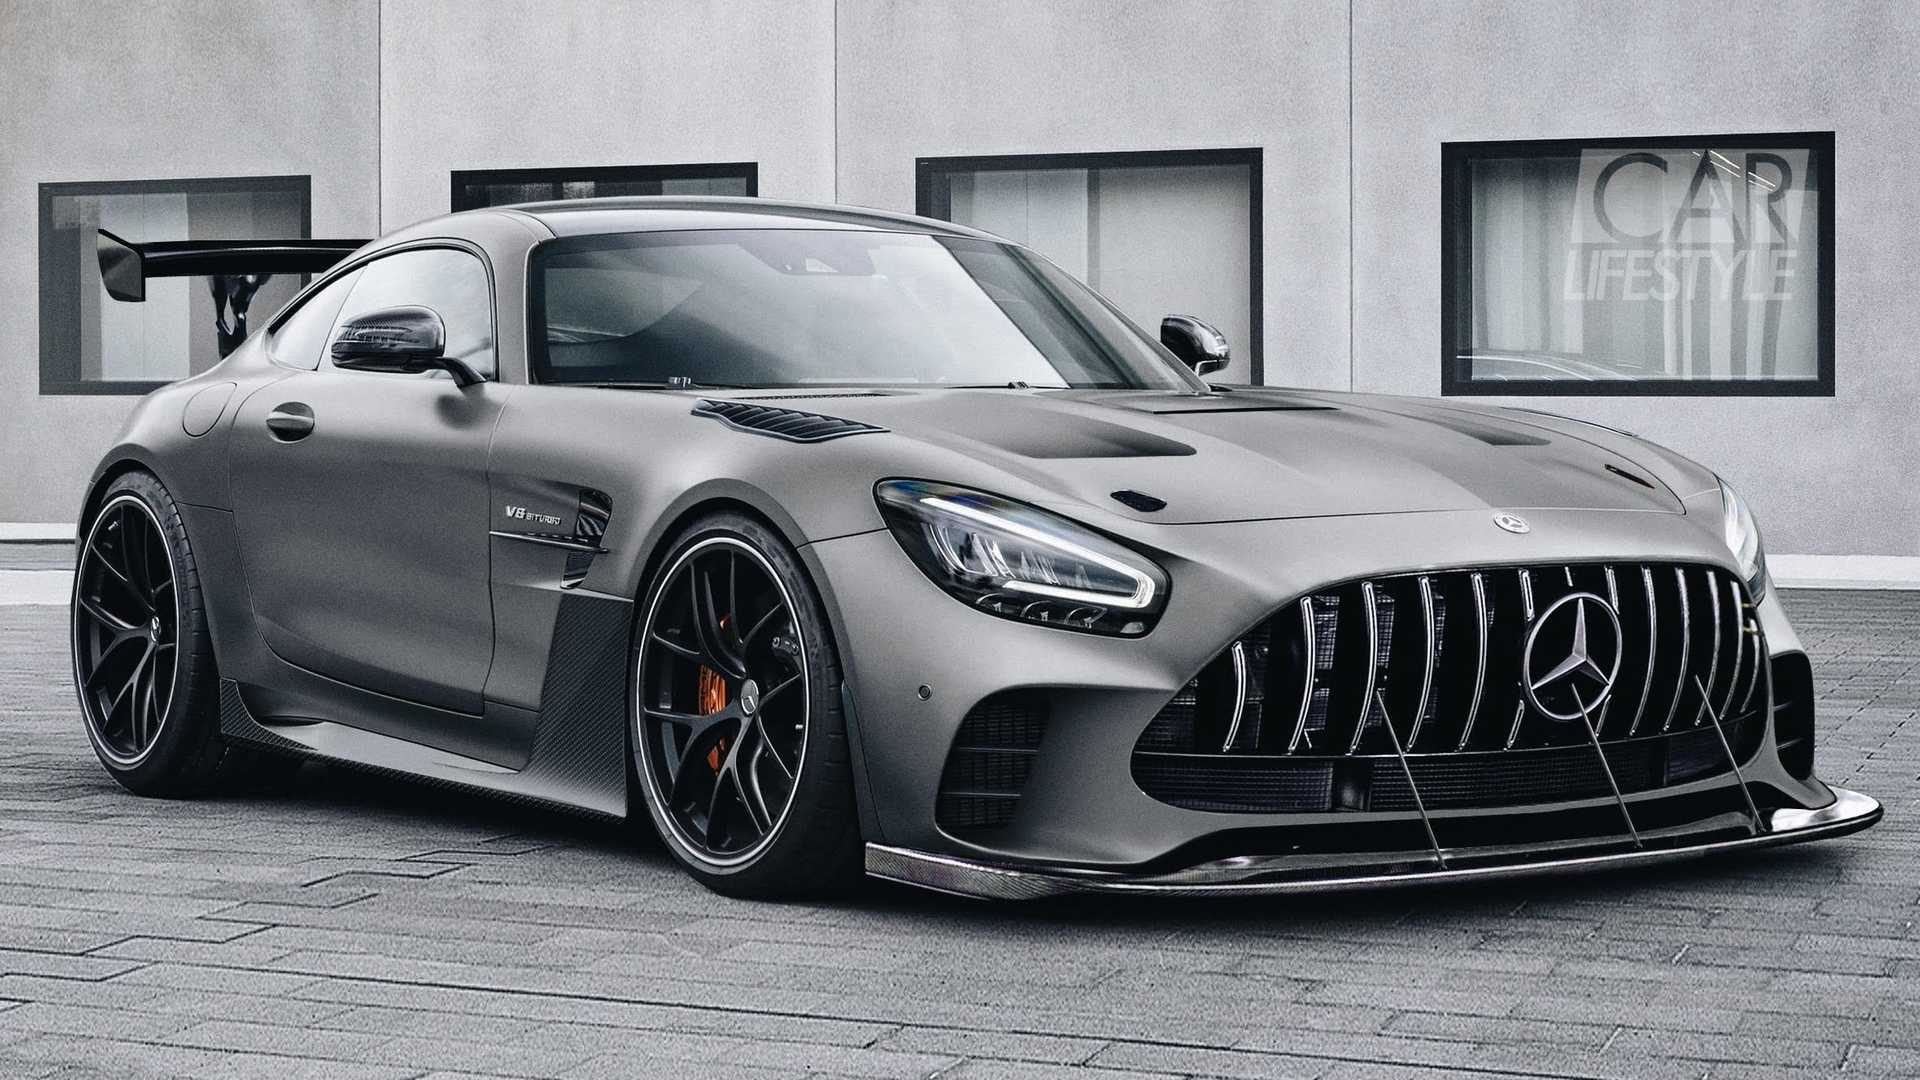 Mercedes Benz Amg Gt >> Mercedes Amg Gt Black Series Rendered As New Spy Shots